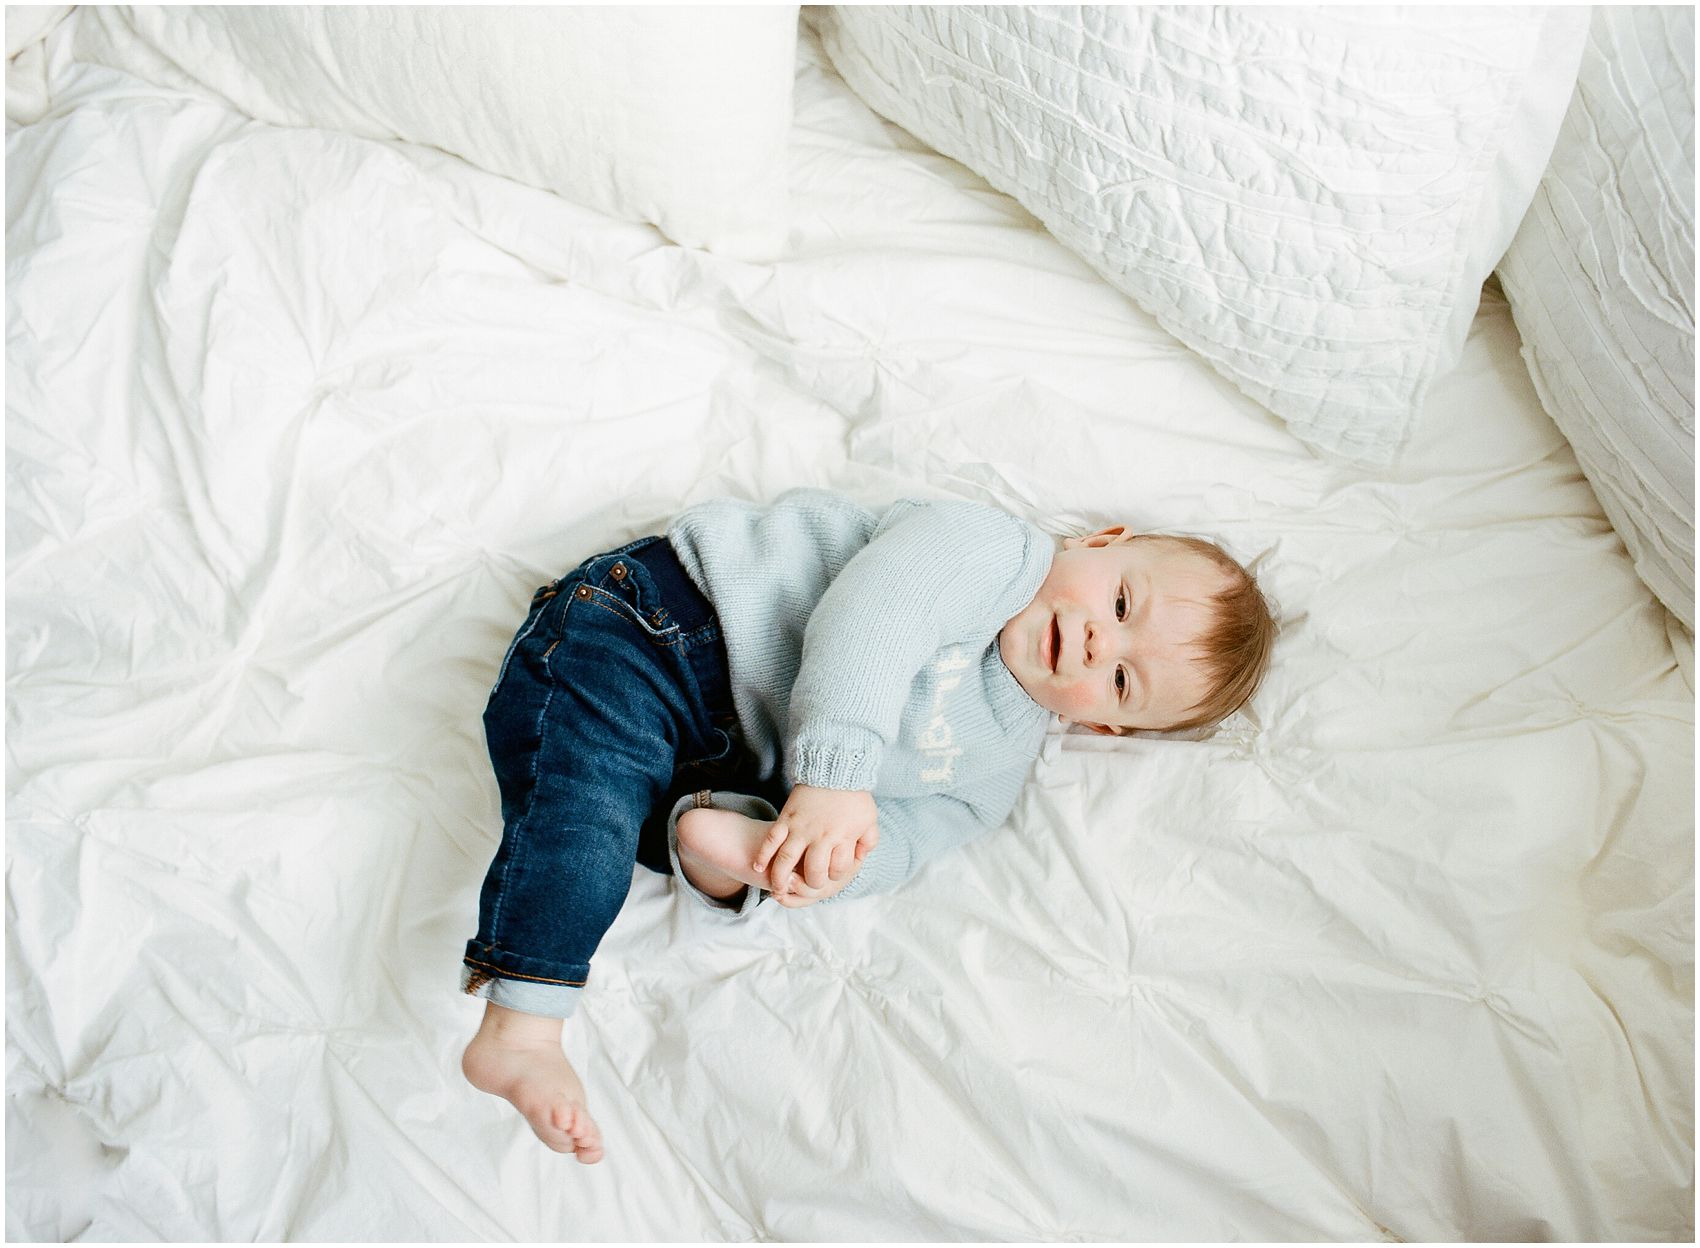 baby boy on the bed during the photo session